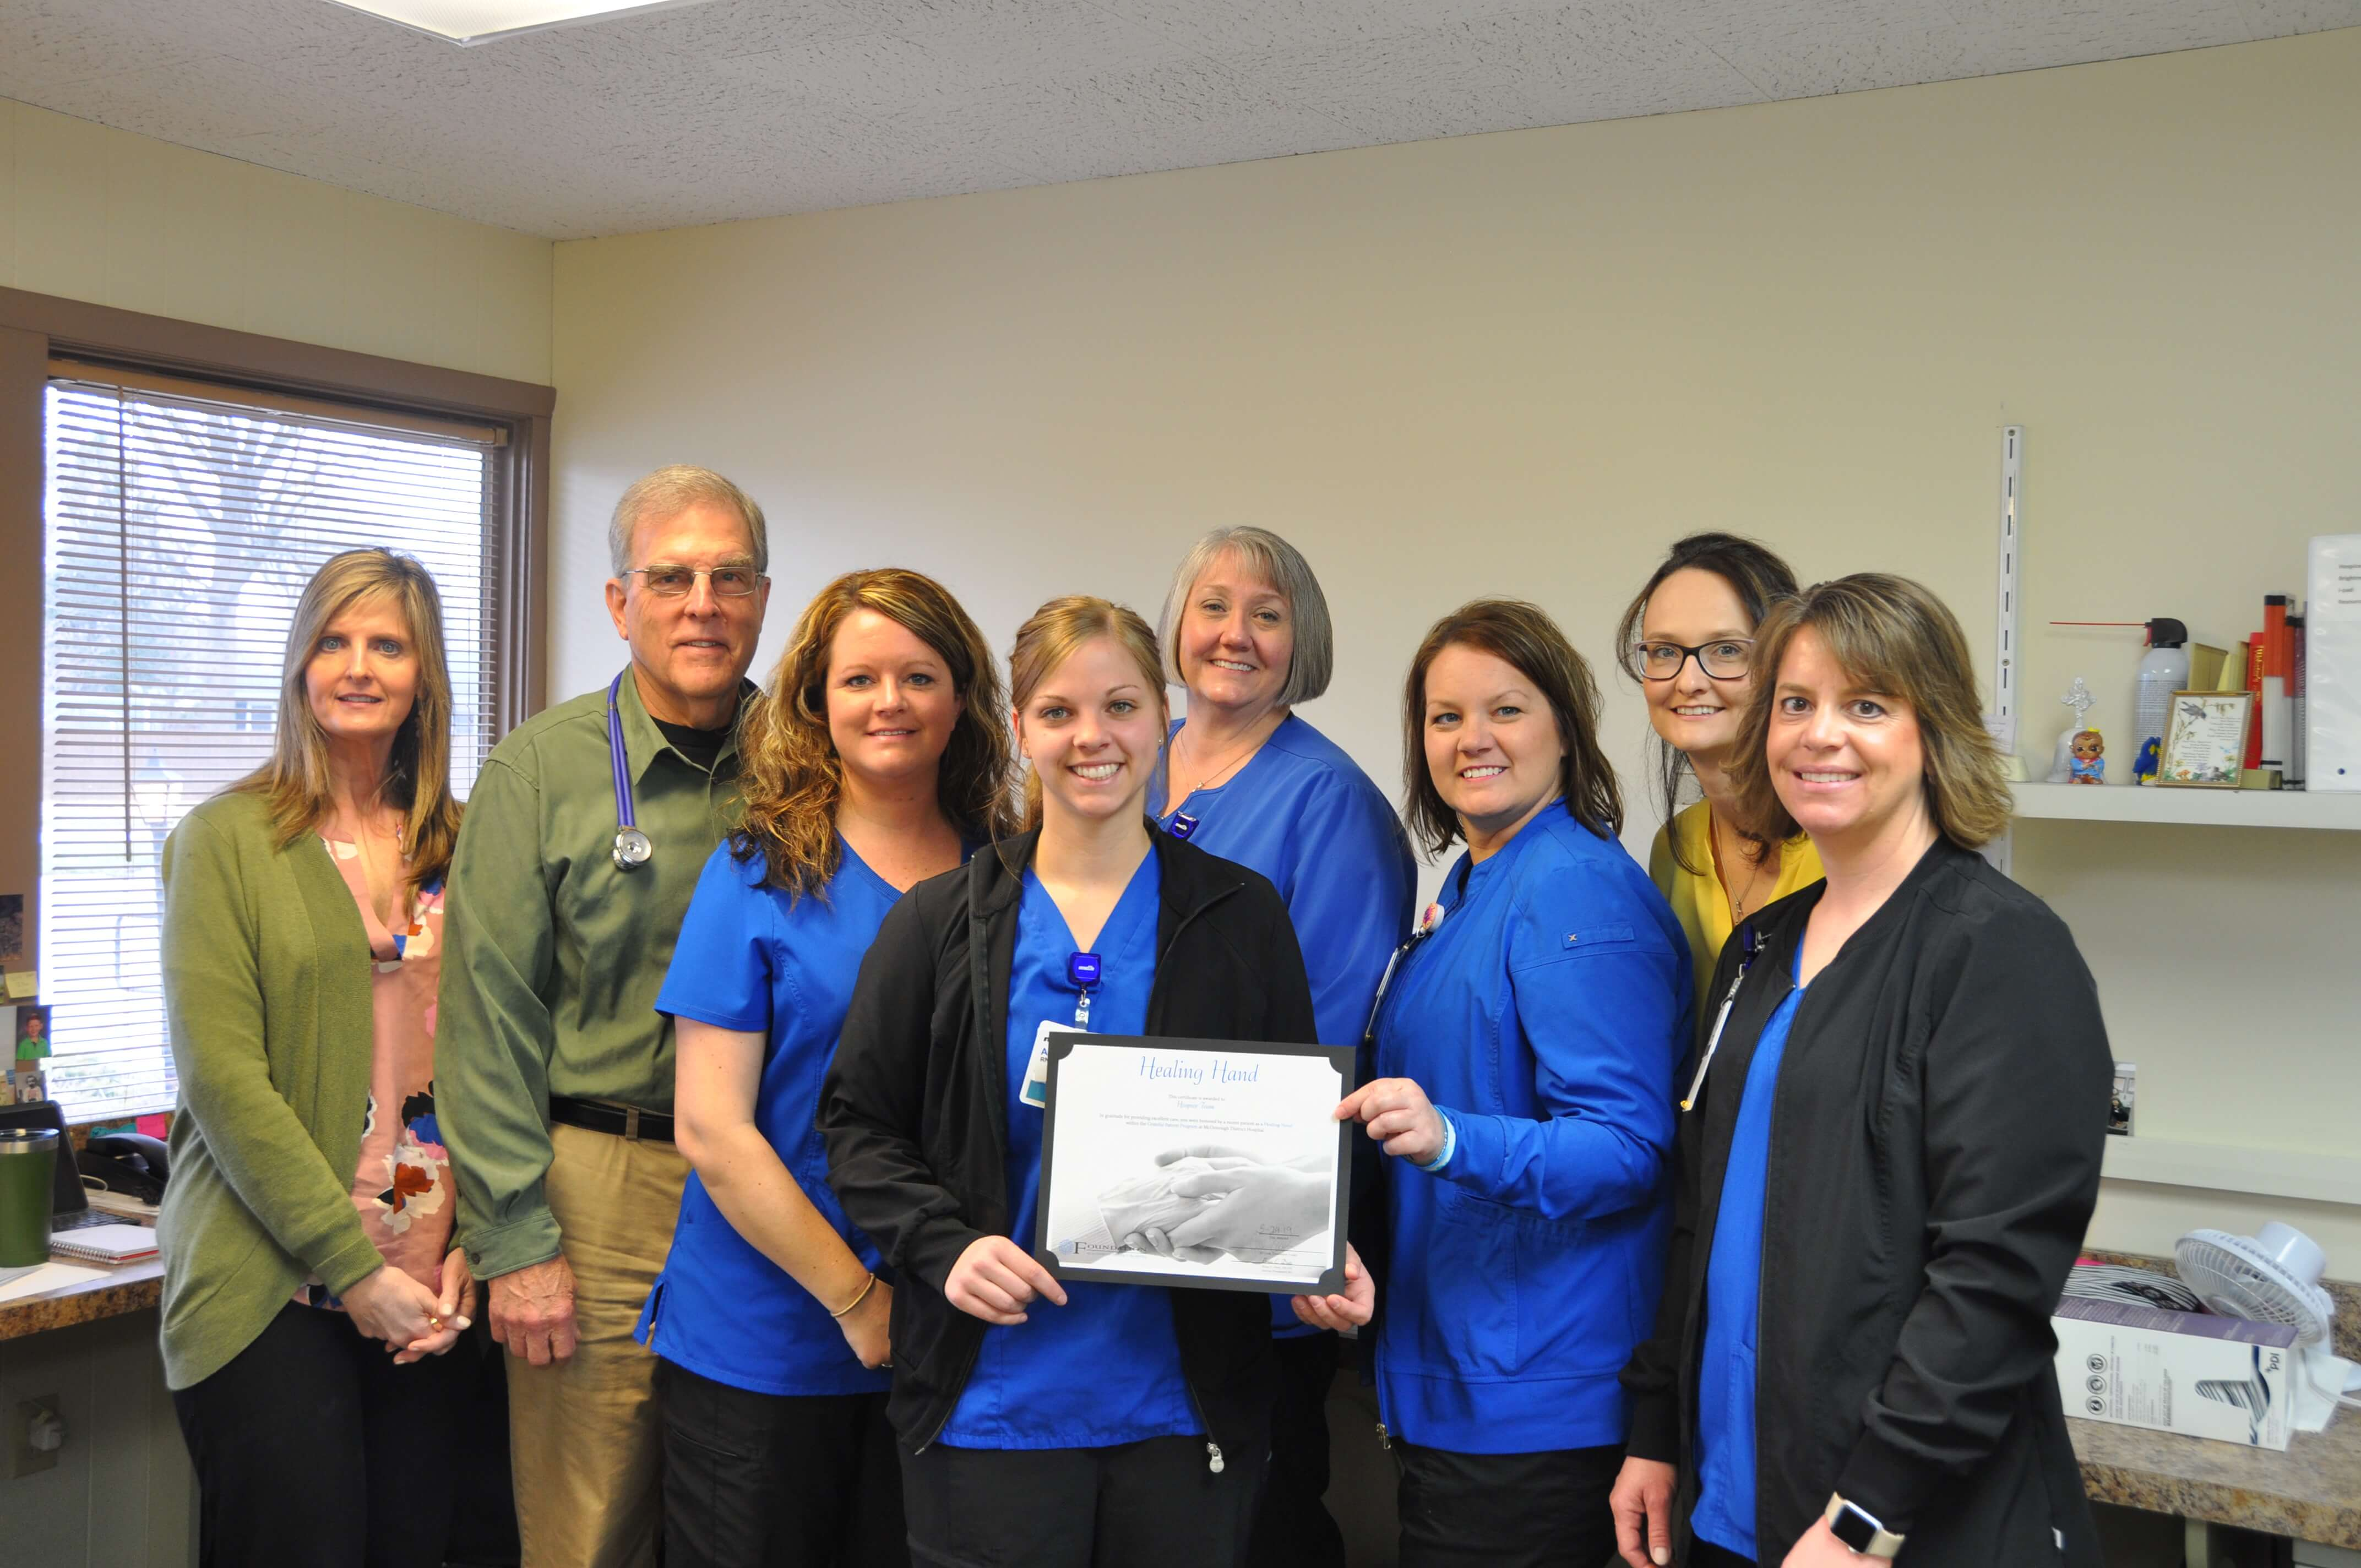 hospice staff with award